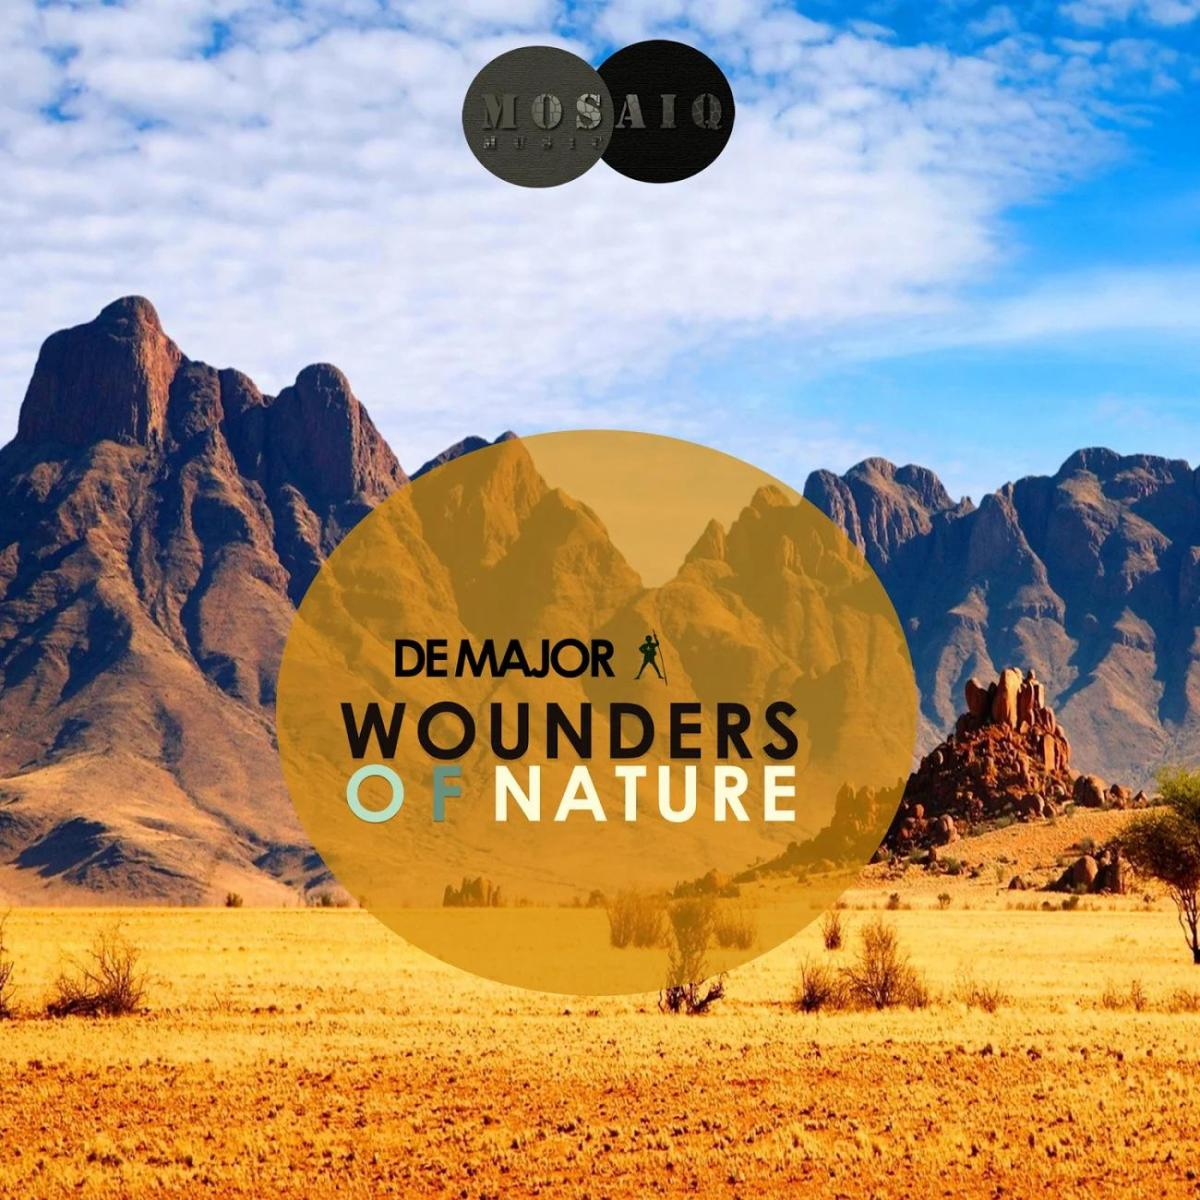 DeMajor - Wounders Of Nature EP